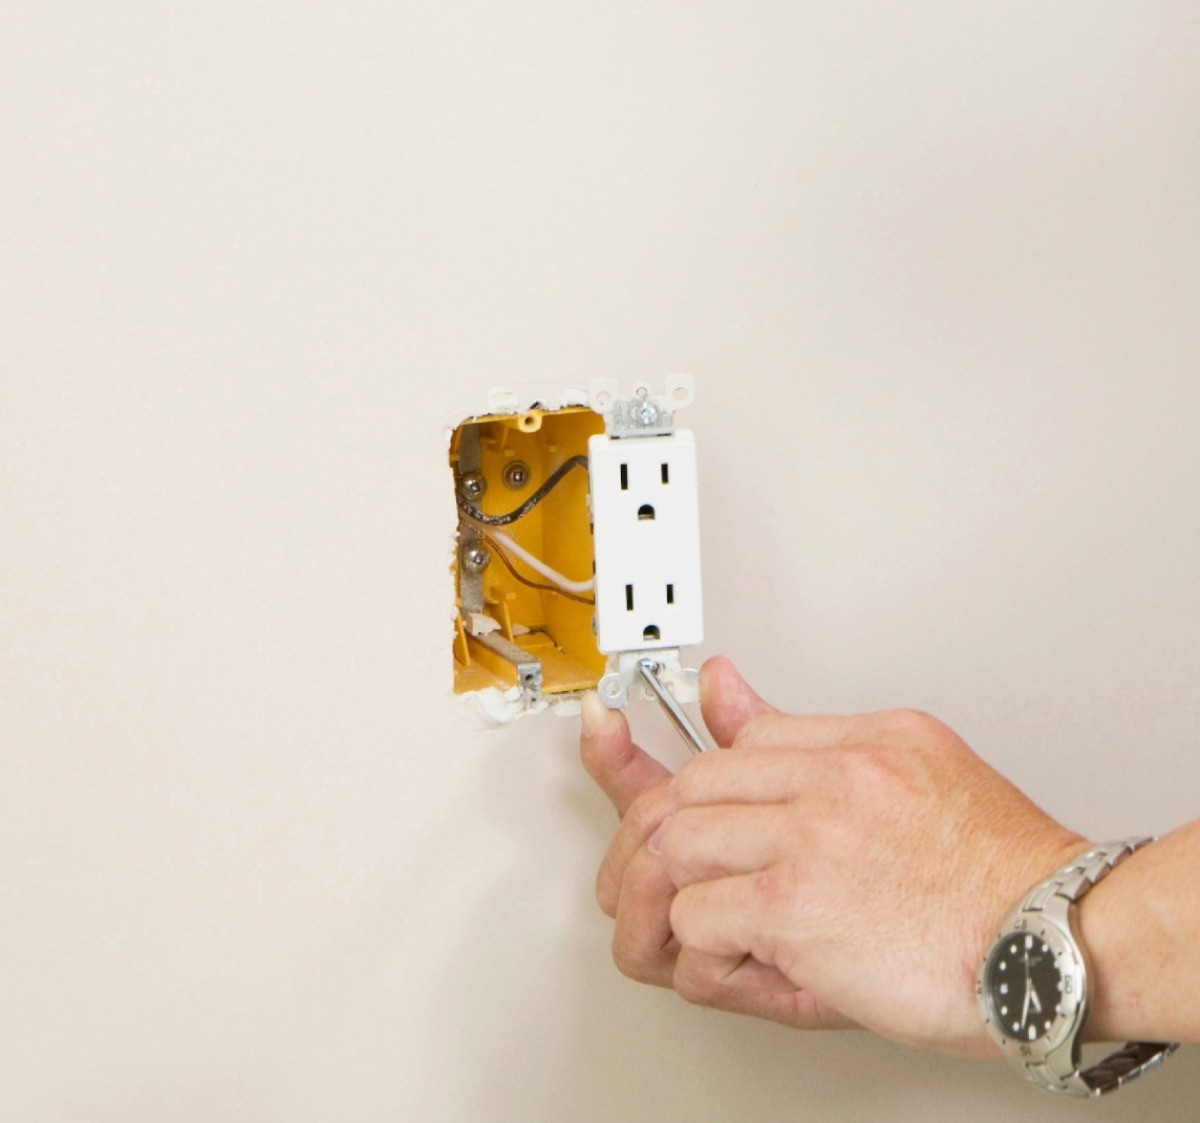 hight resolution of changing a 15 amp outlet to 20 amps